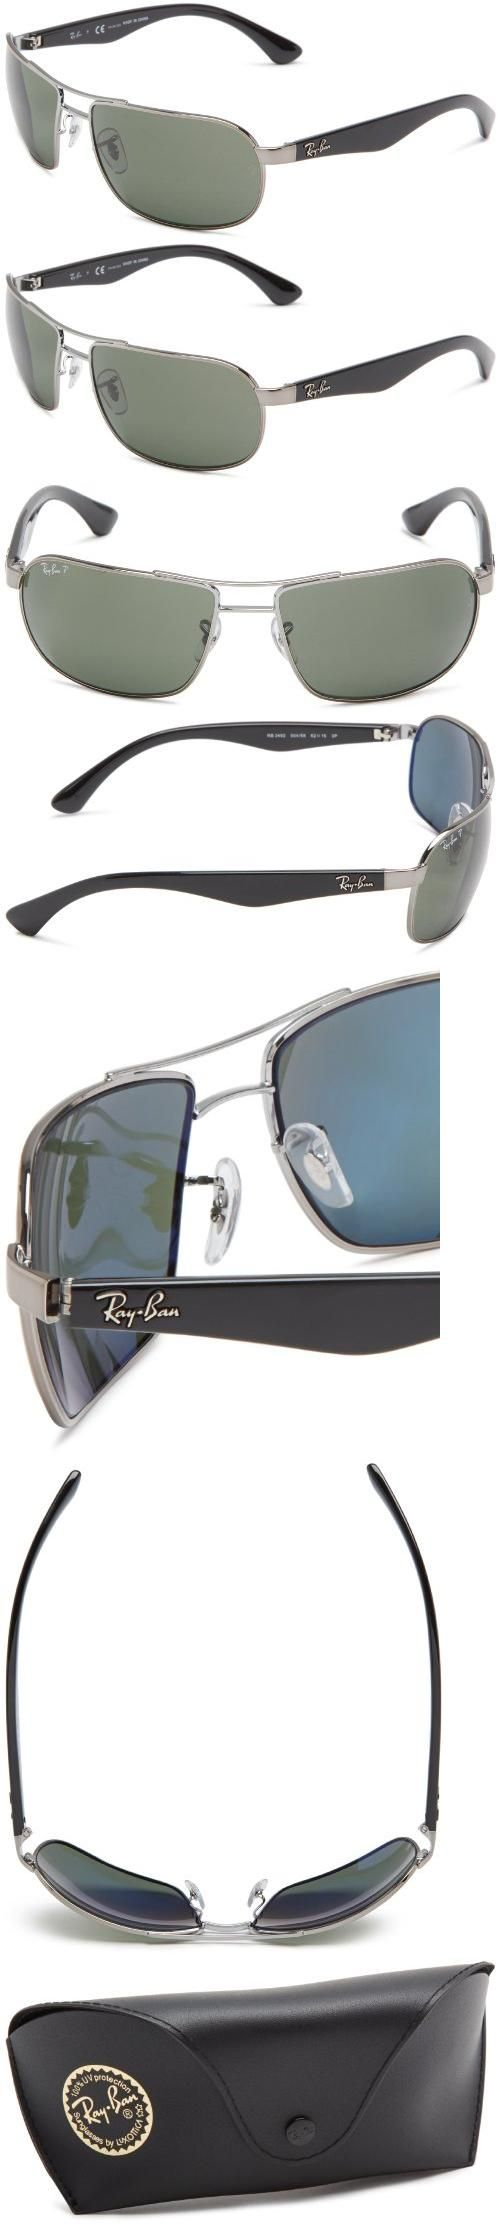 60df4ed3ac ... norway ray ban rb3492 polarized 004 58 d7014 6adf9